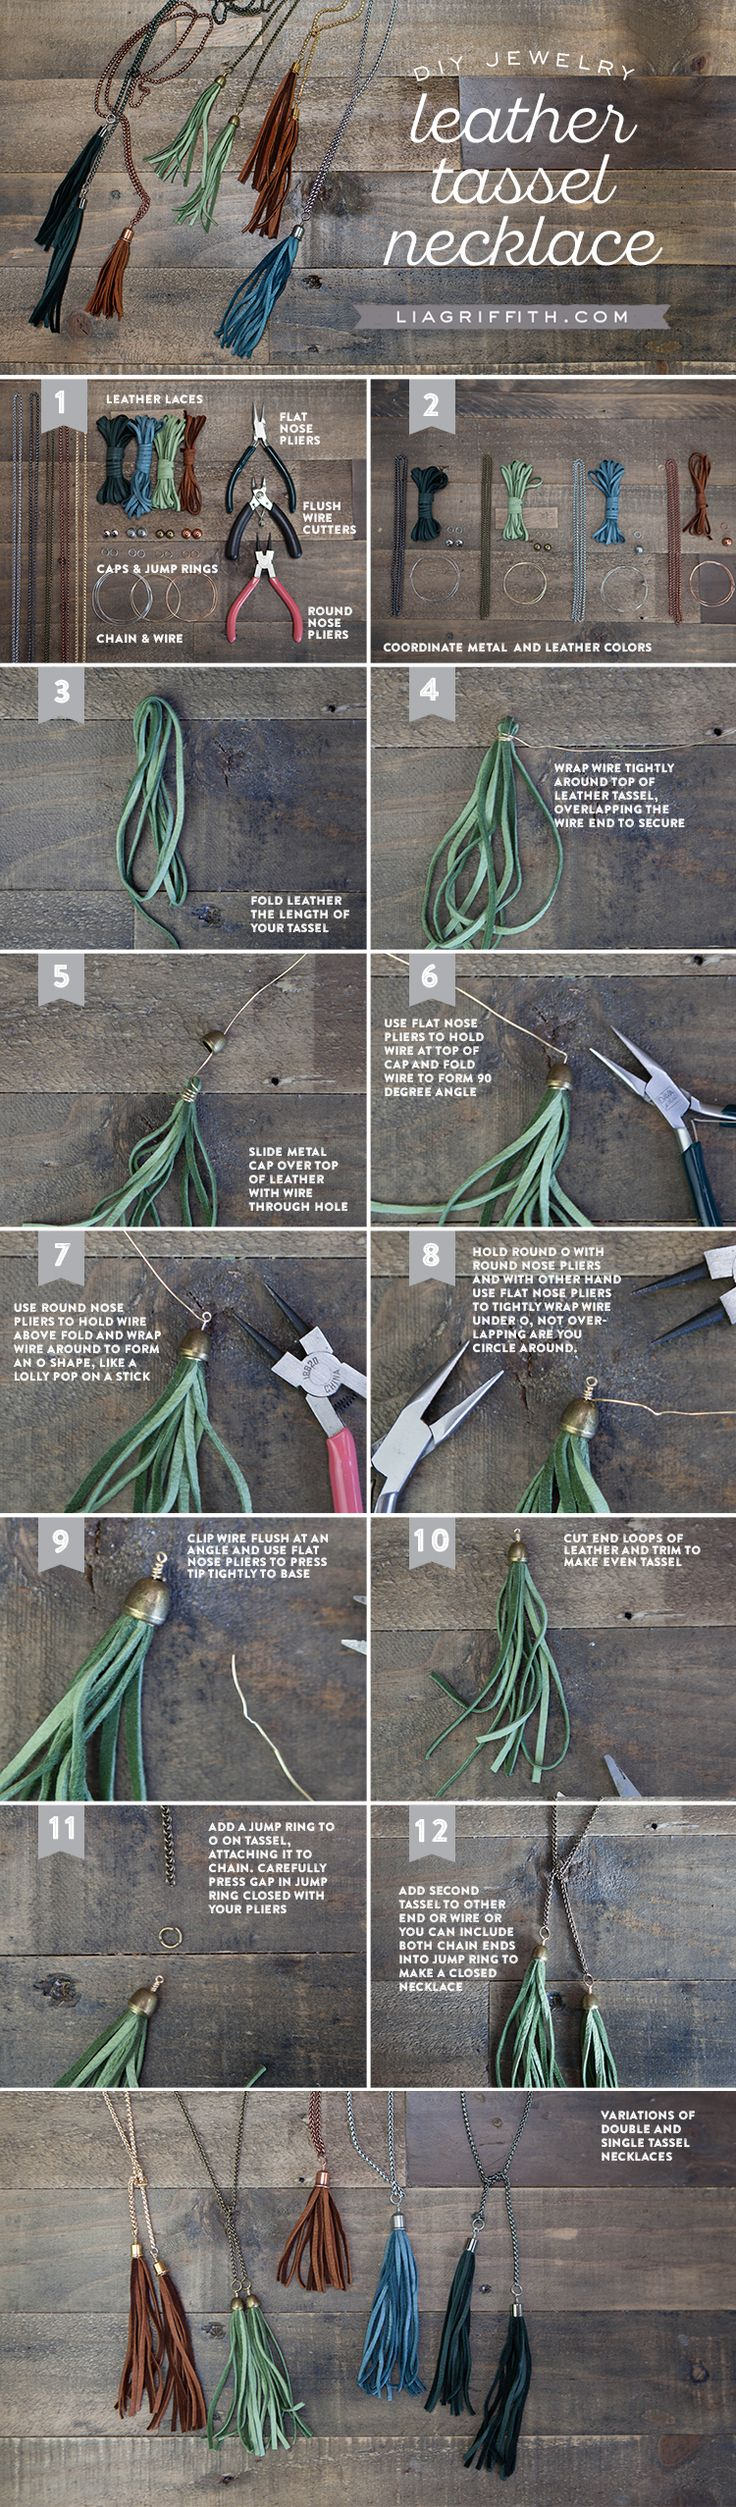 DIY Leather Tassel Necklace how-to by Michaels Makers Lia Griffith